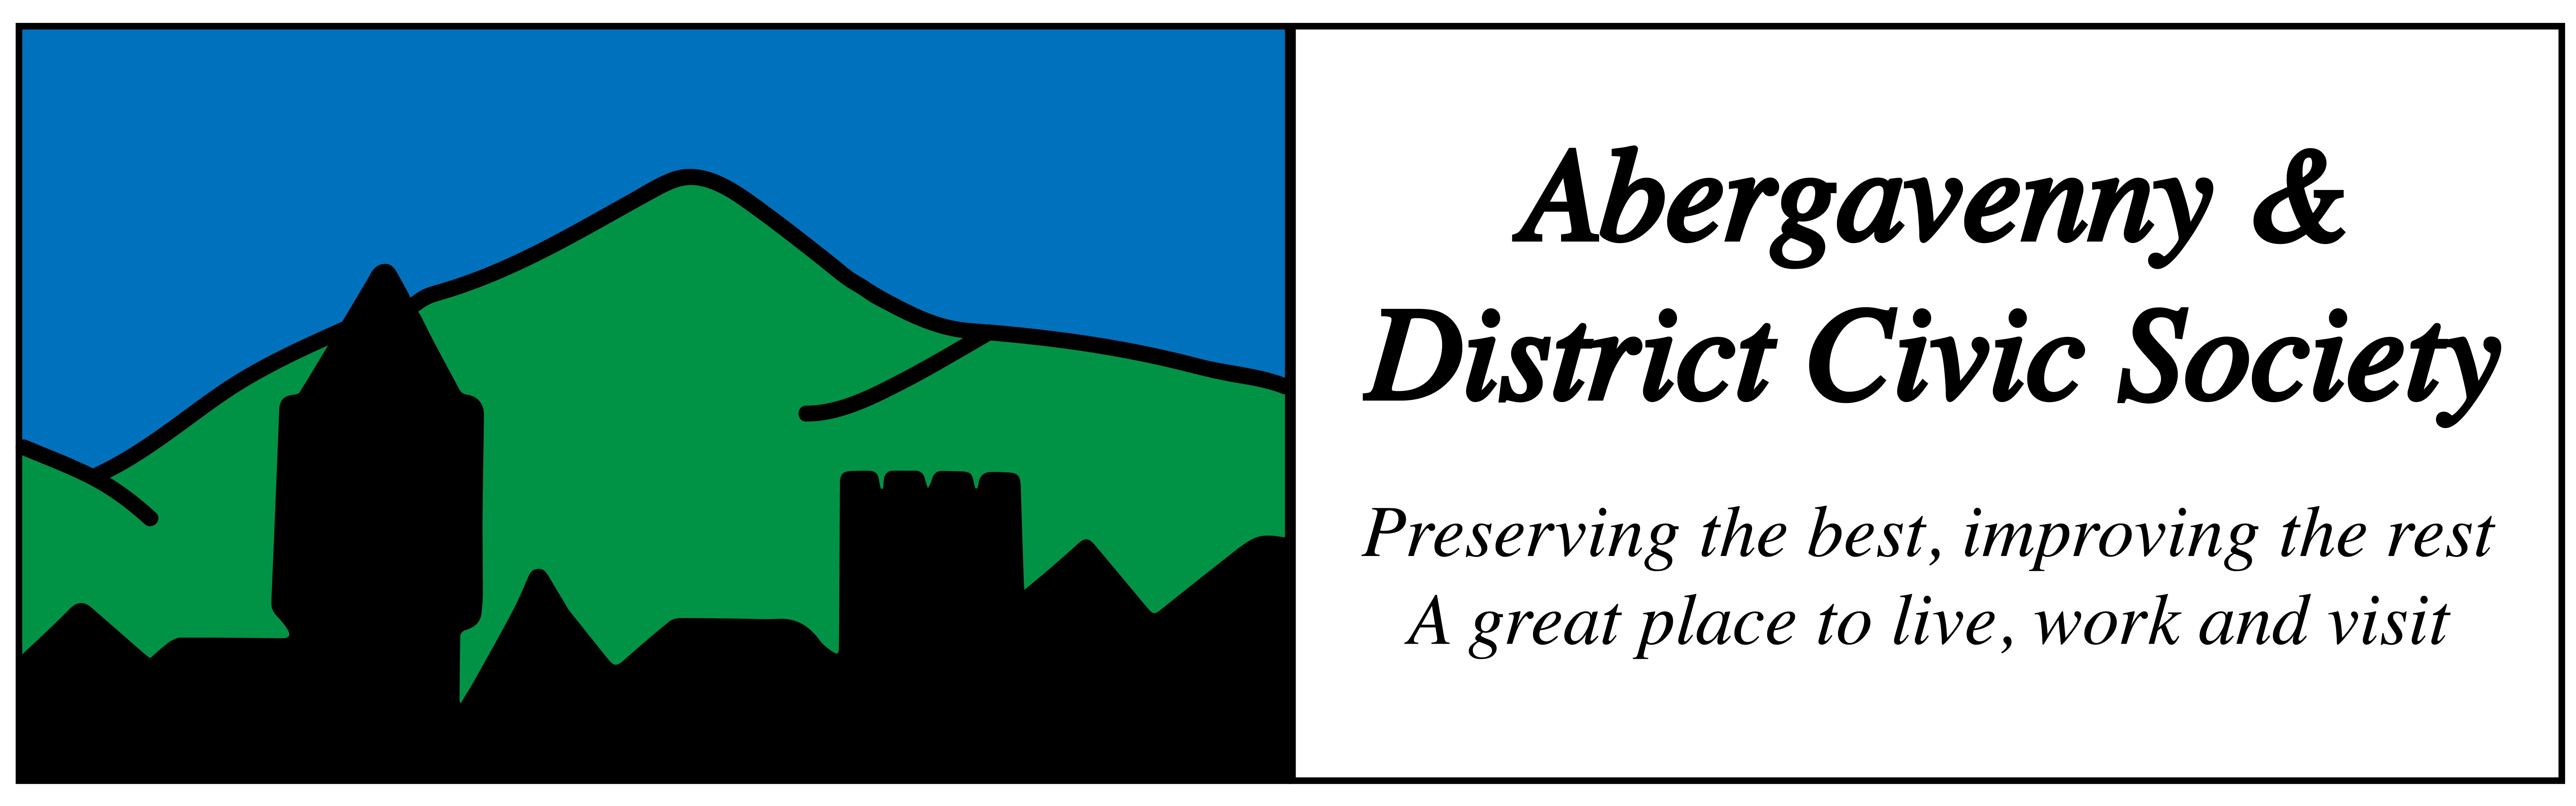 Abergavenny and District Civic Society